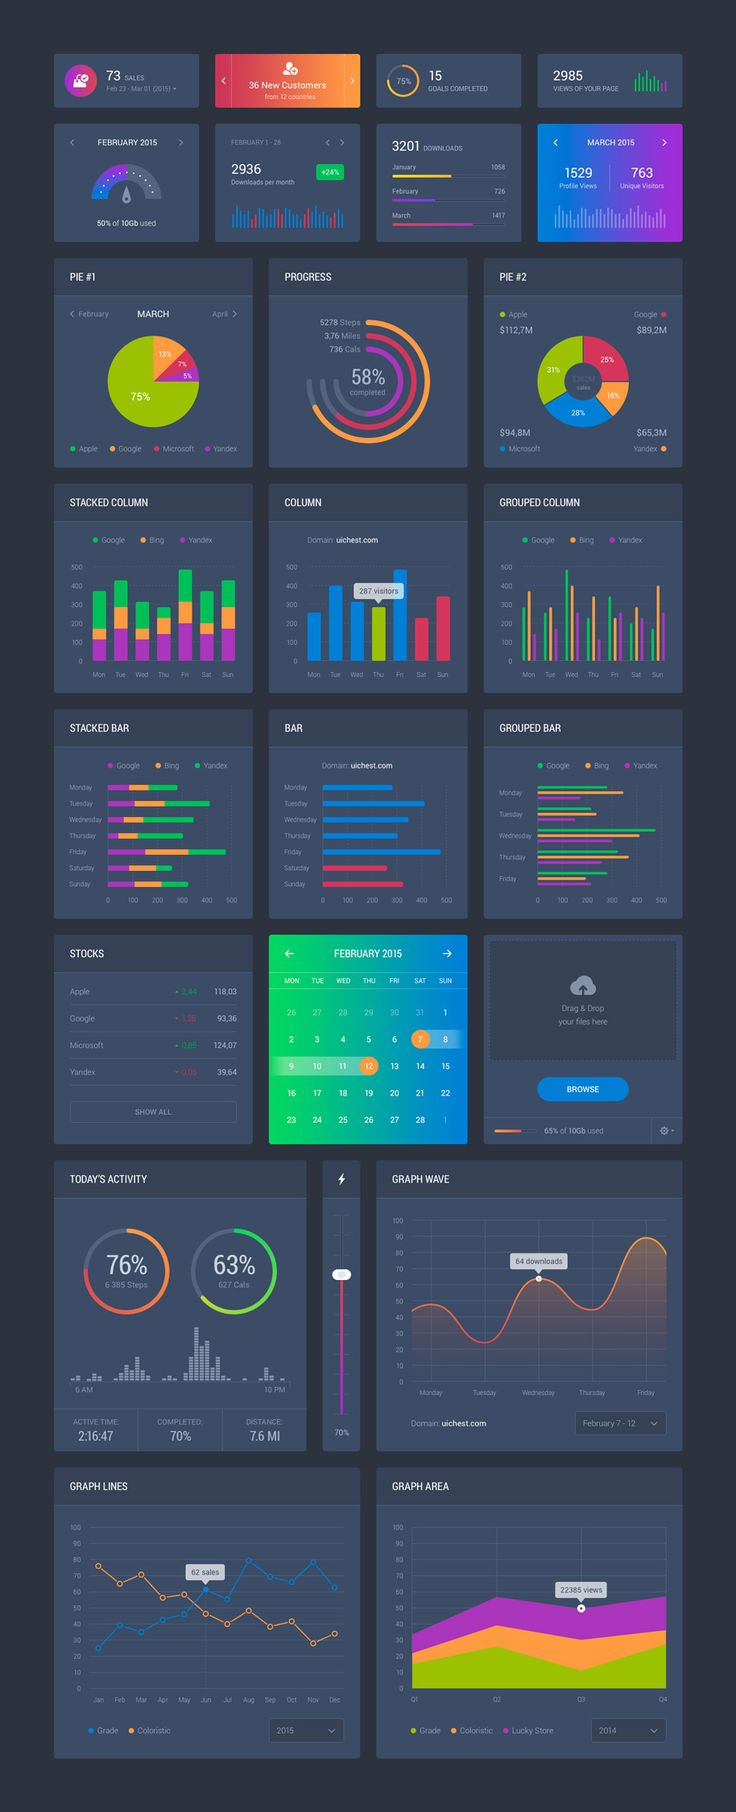 Dribbble - dashboard_dark.jpg by Sergey Azovskiy